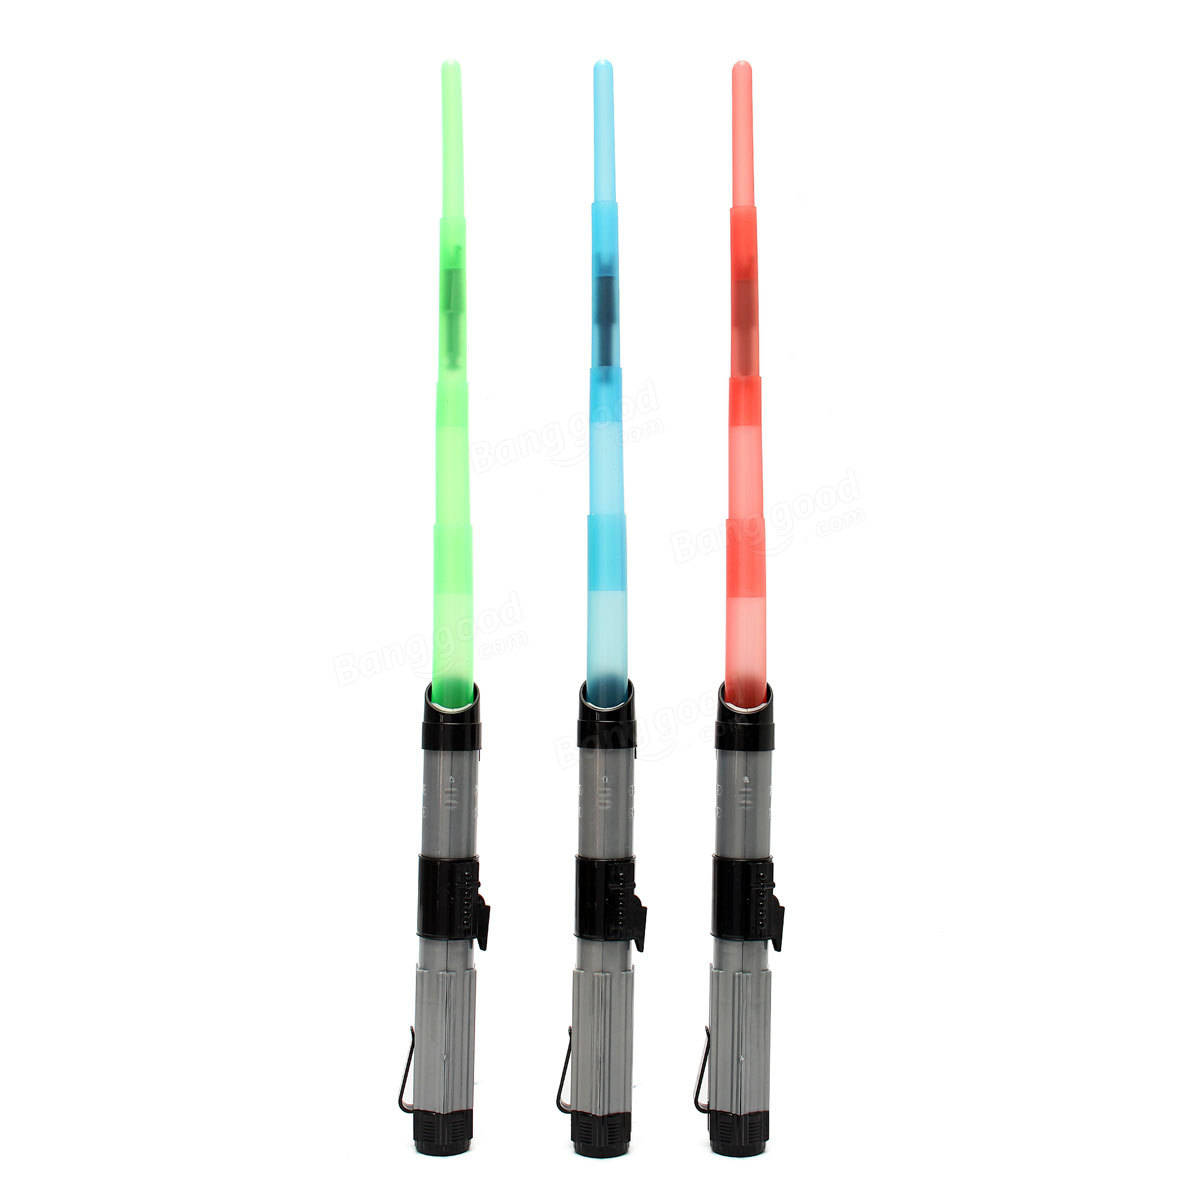 Lightsaber Light Saber Telescopic Sword Light Sound ...